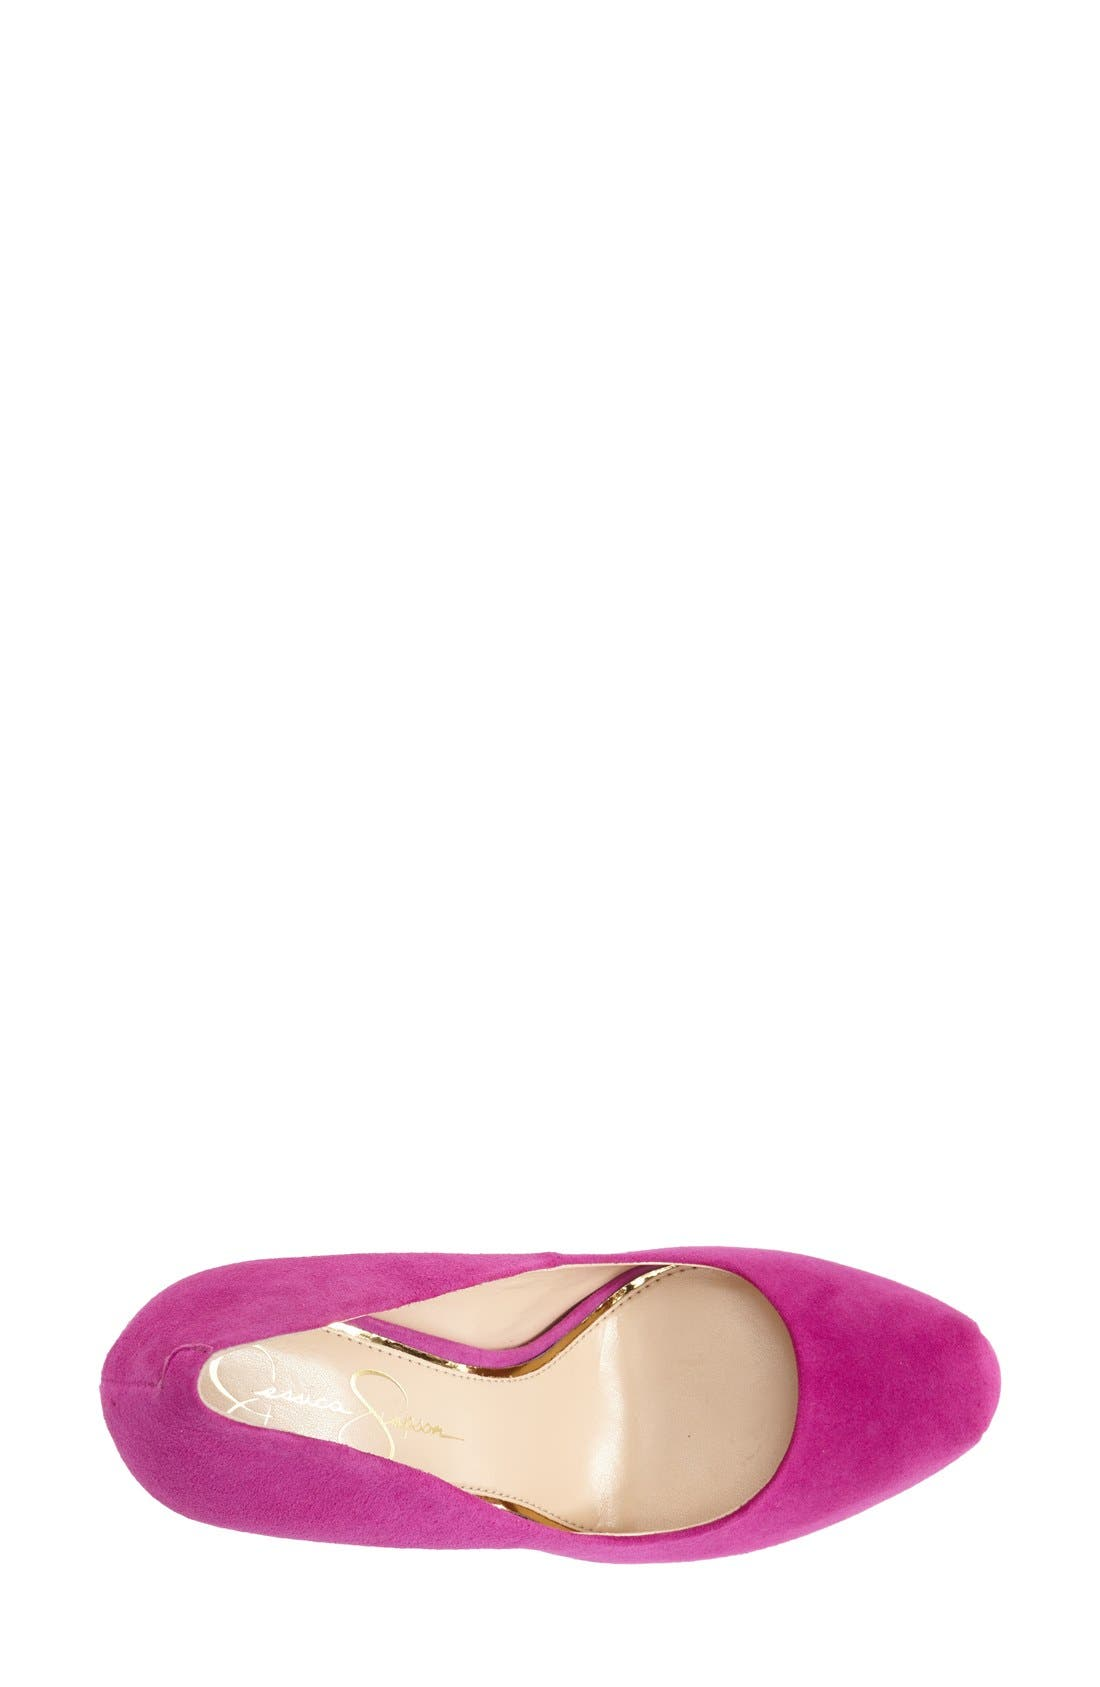 'Rebeca' Platform Pump,                             Alternate thumbnail 3, color,                             Spring Magenta